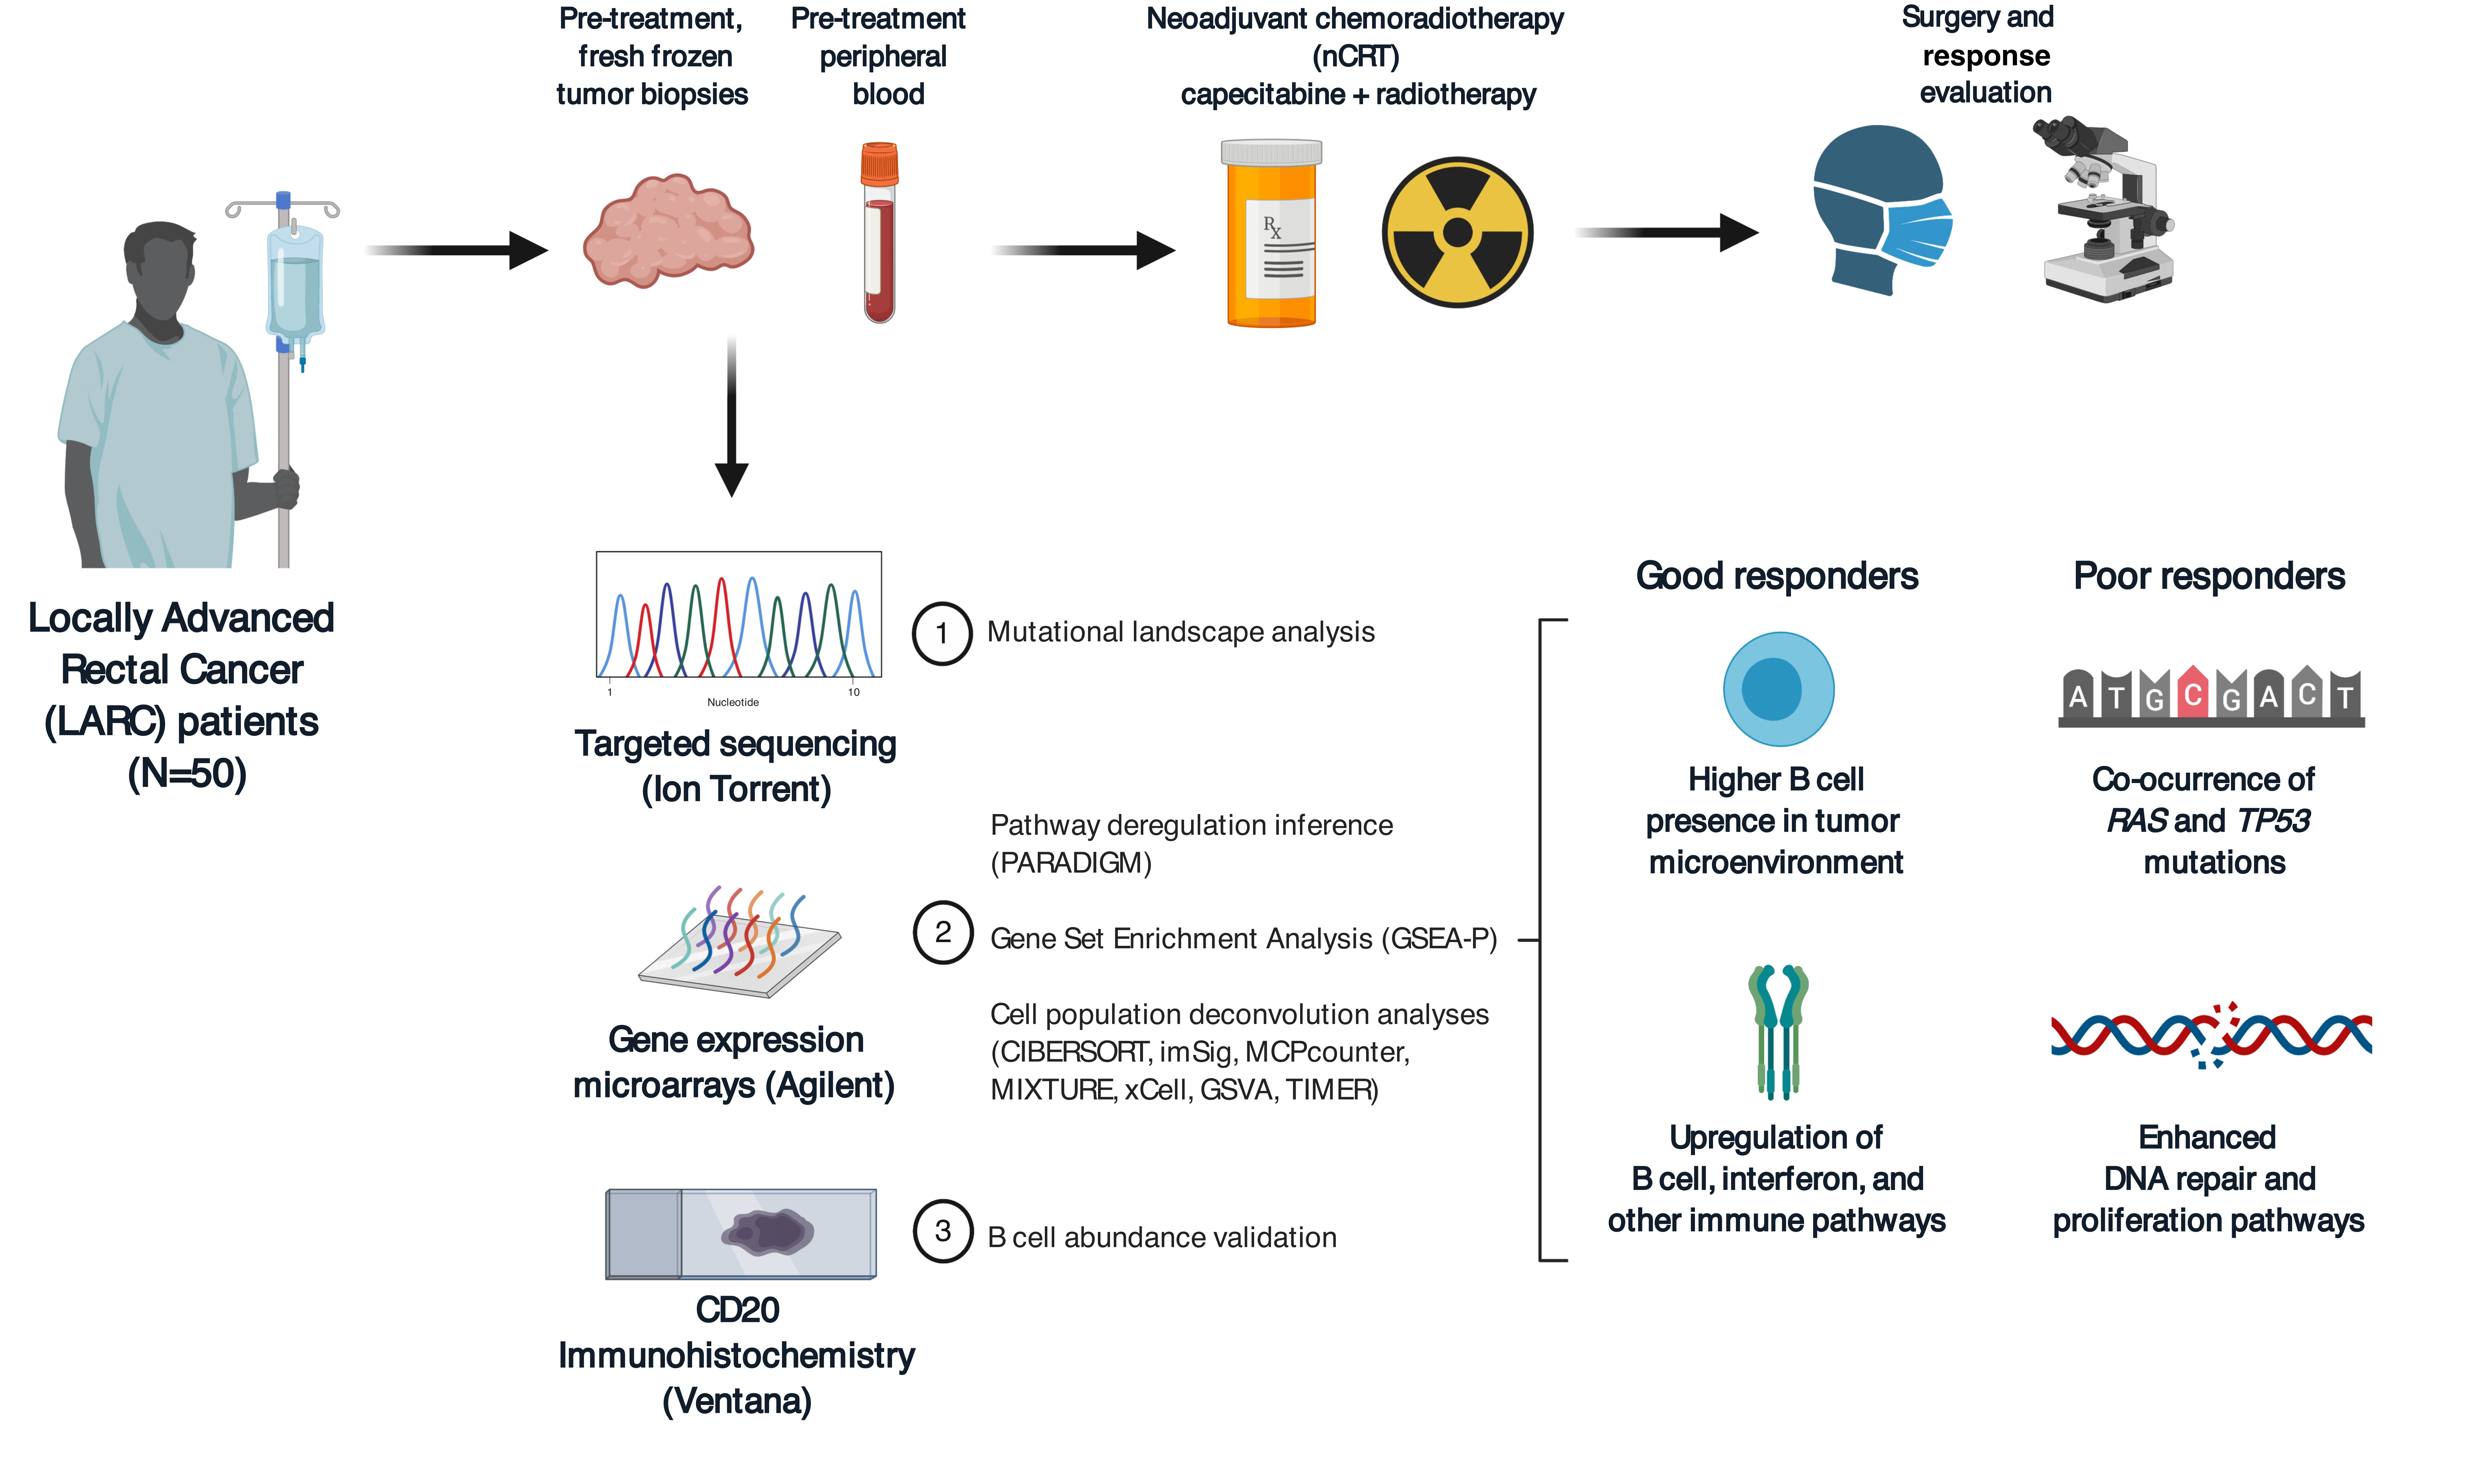 Cancers Free Full Text Pre Existing Tumoral B Cell Infiltration And Impaired Genome Maintenance Correlate With Response To Chemoradiotherapy In Locally Advanced Rectal Cancer